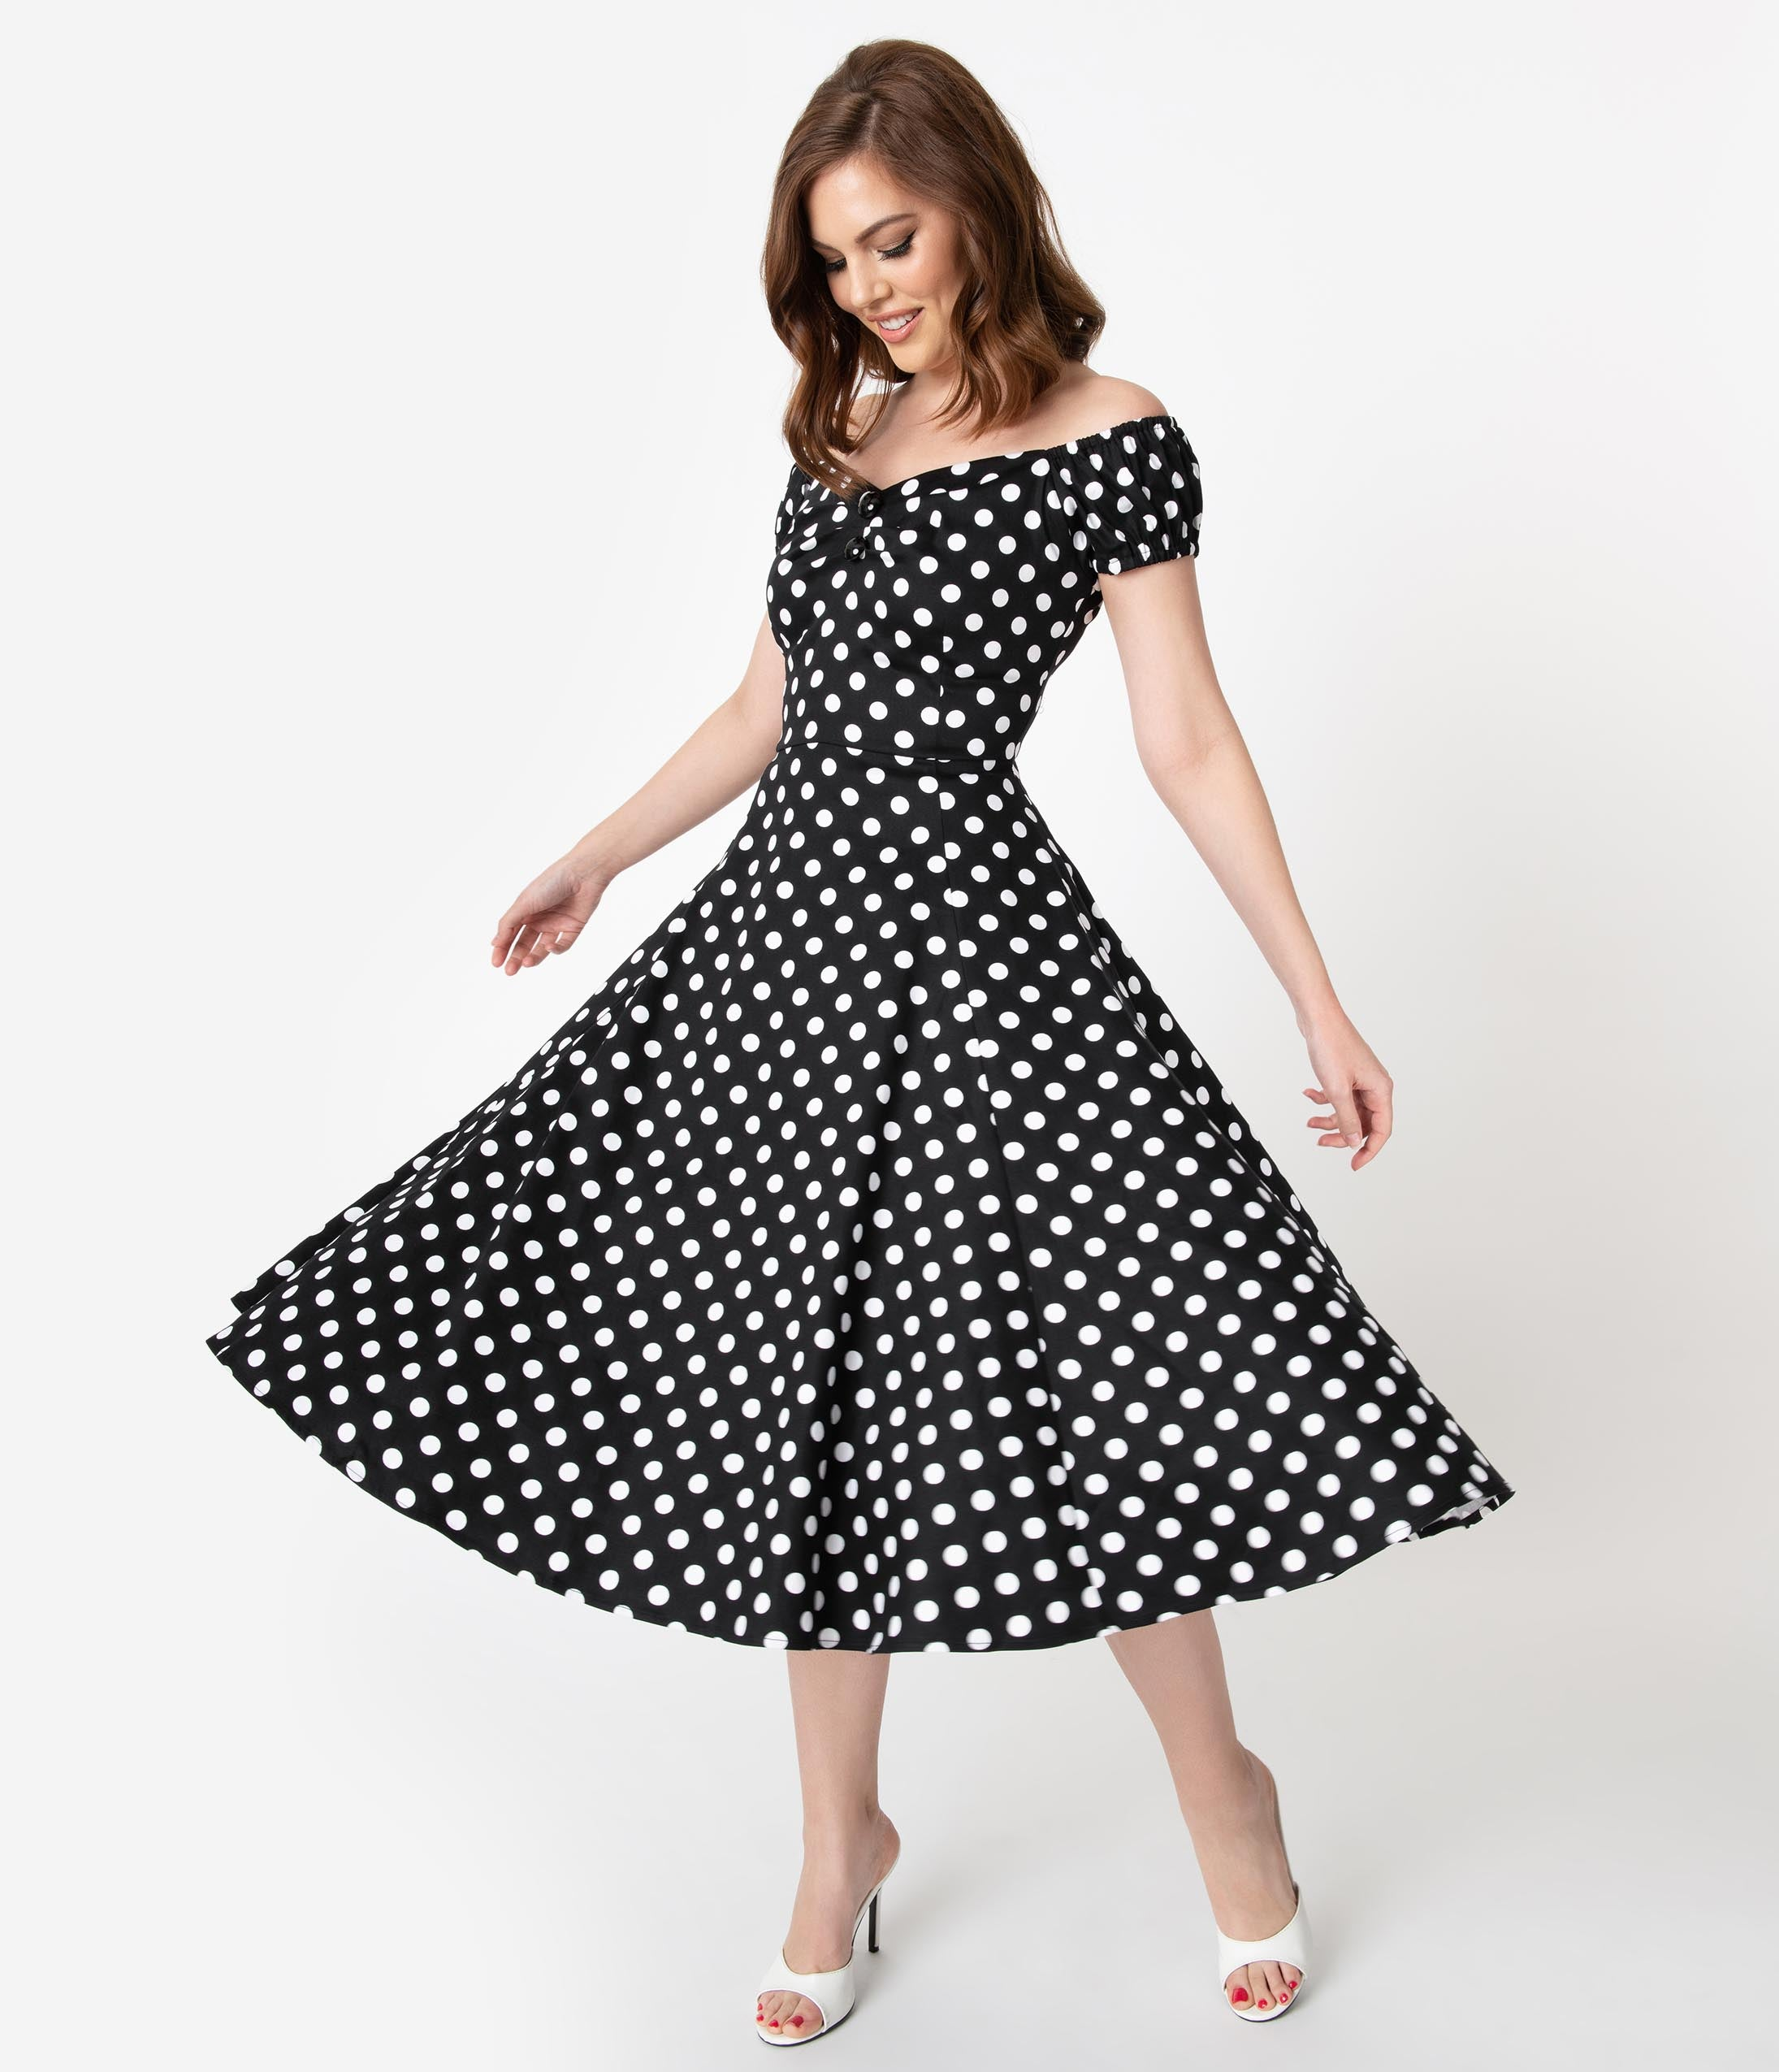 Rockabilly Dresses | Rockabilly Clothing | Viva Las Vegas Collectif 1950S Style Black  White Polka Dot Dolores Swing Dress $68.00 AT vintagedancer.com